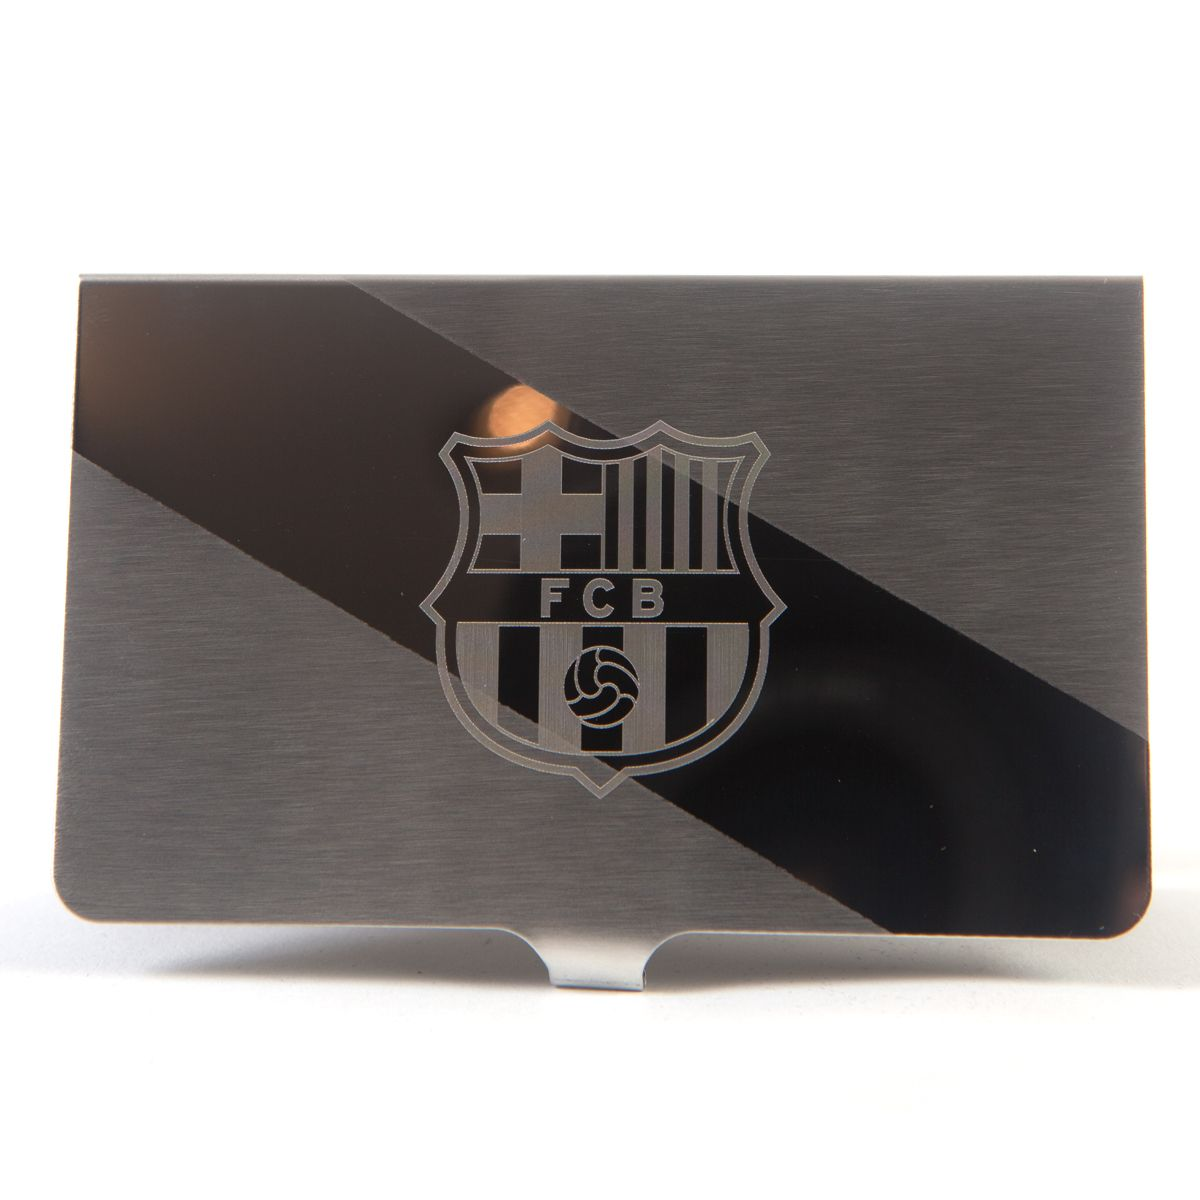 Fc barcelona business card holder rs 999 official football fc barcelona business card holder rs 999 official football merchandise from reheart Image collections